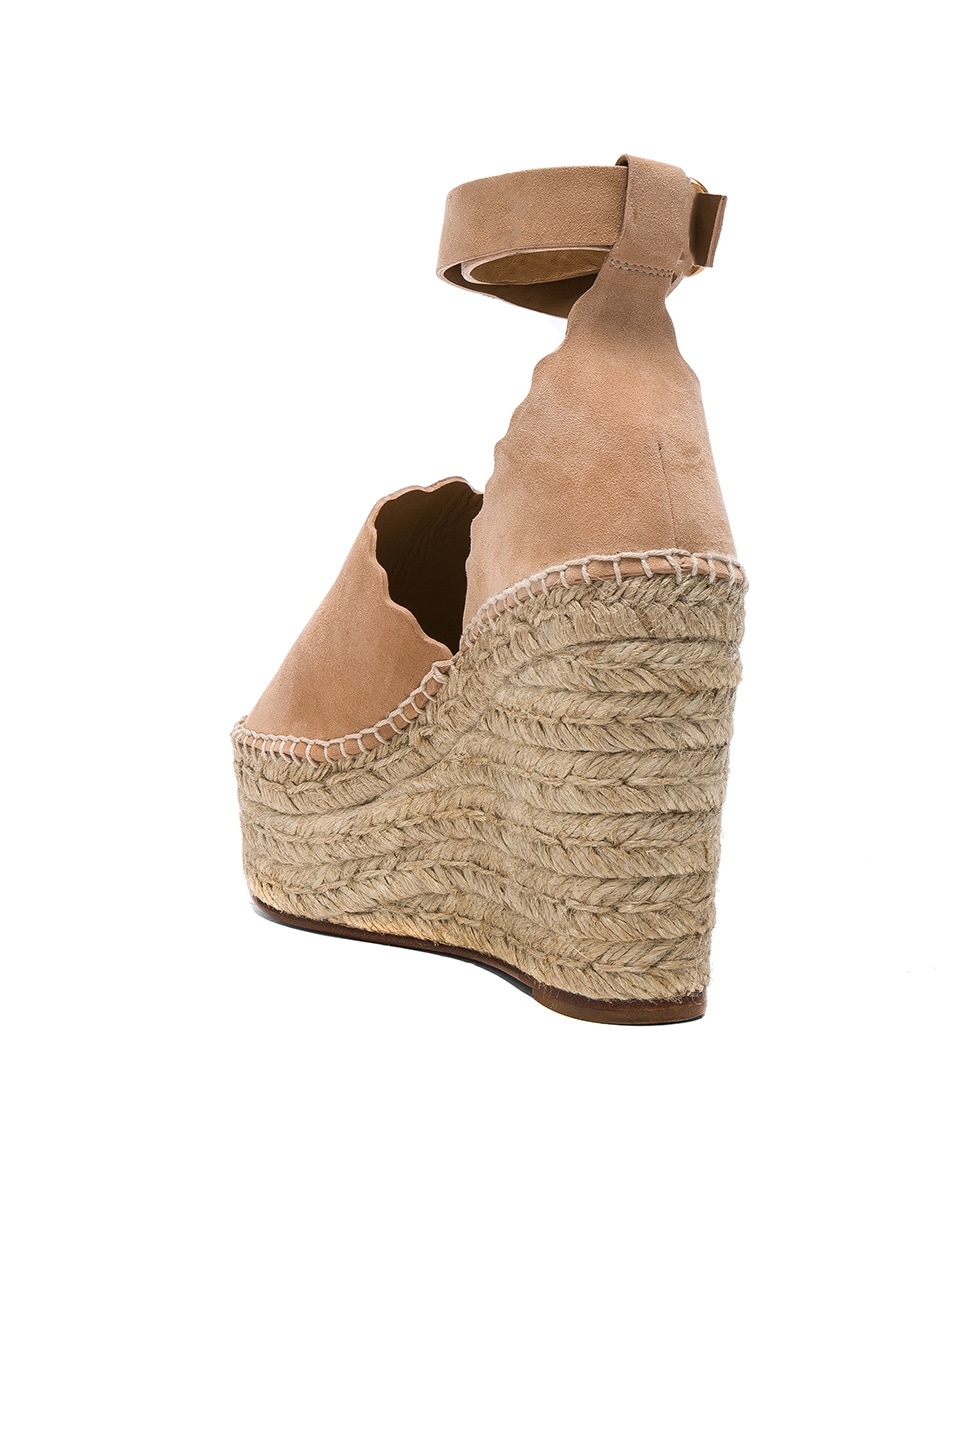 Image 3 of Chloe Suede Lauren Espadrille Wedges in Reef Shell